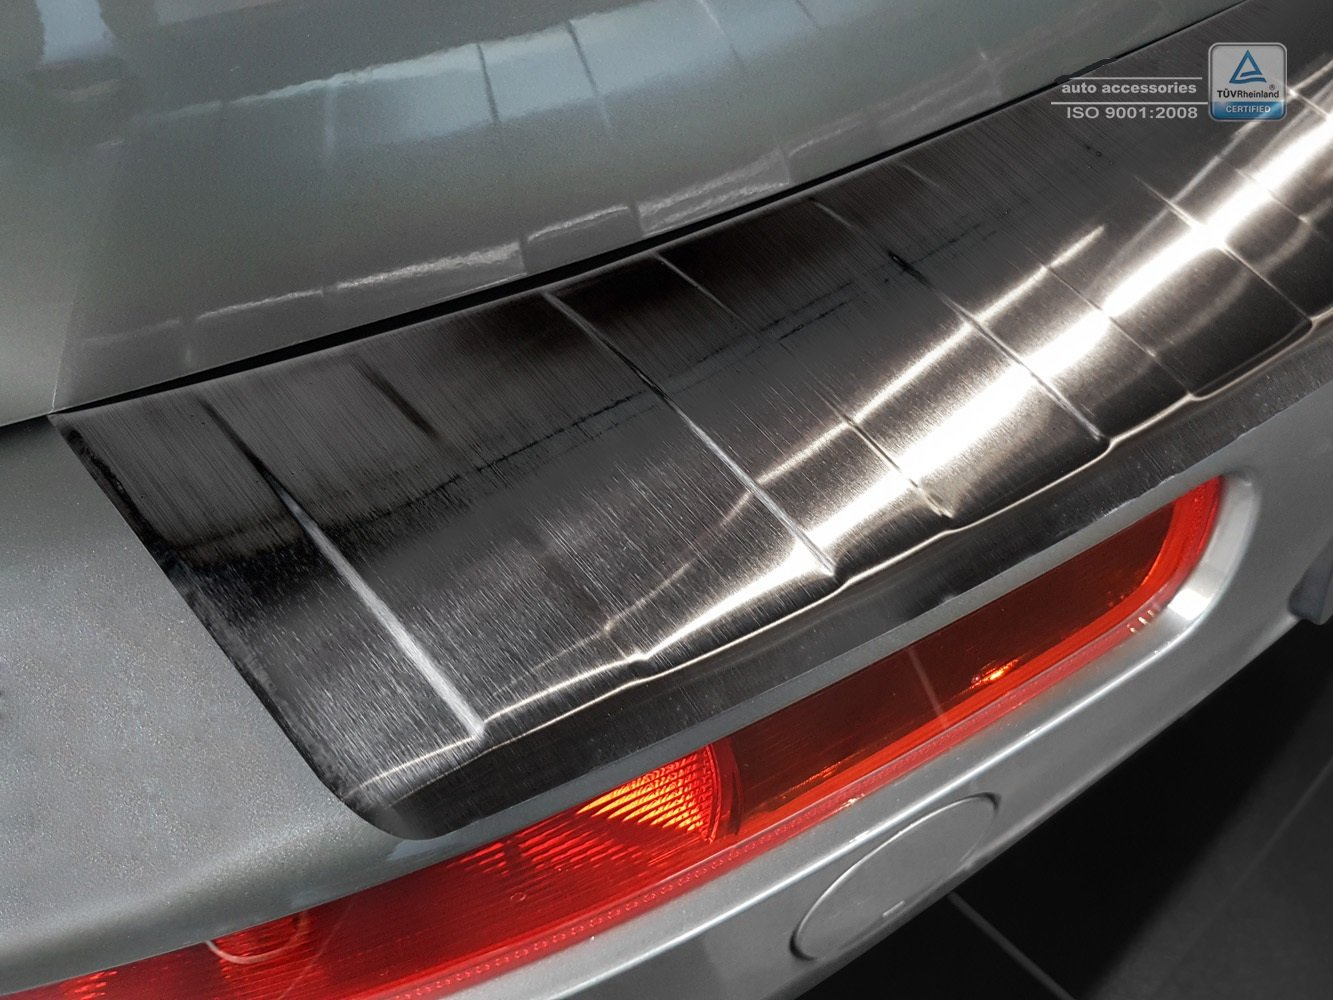 ZIC Motorsports Graphite Black Stainless Steel Rear Bumper Protector Guard fits 2016-2017 Mini Cooper Clubman R54